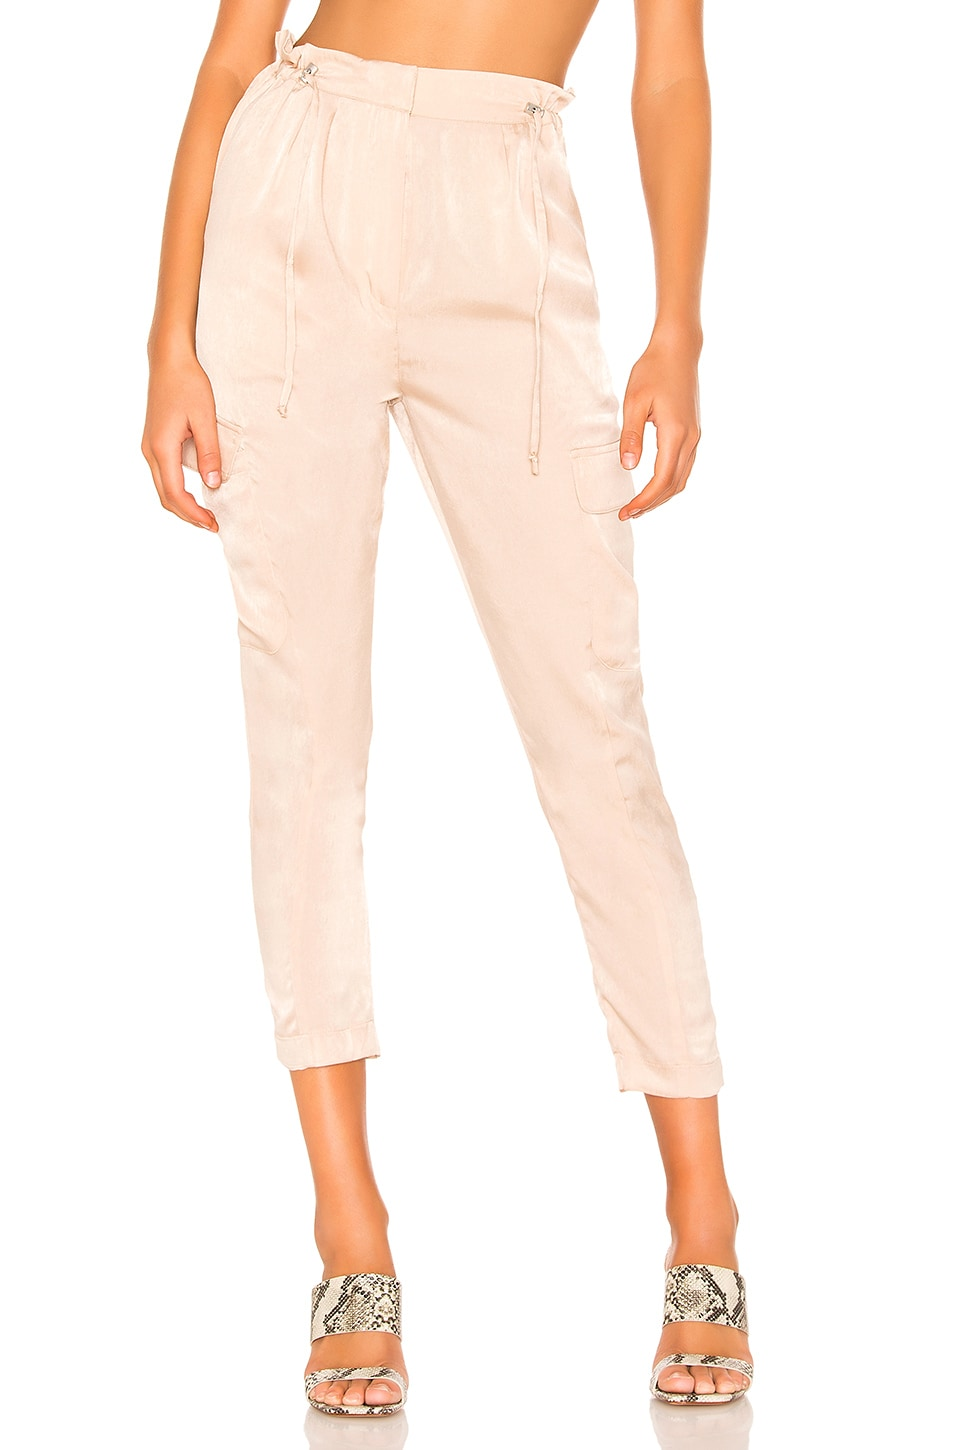 Tularosa Rosemary Pants in Nude